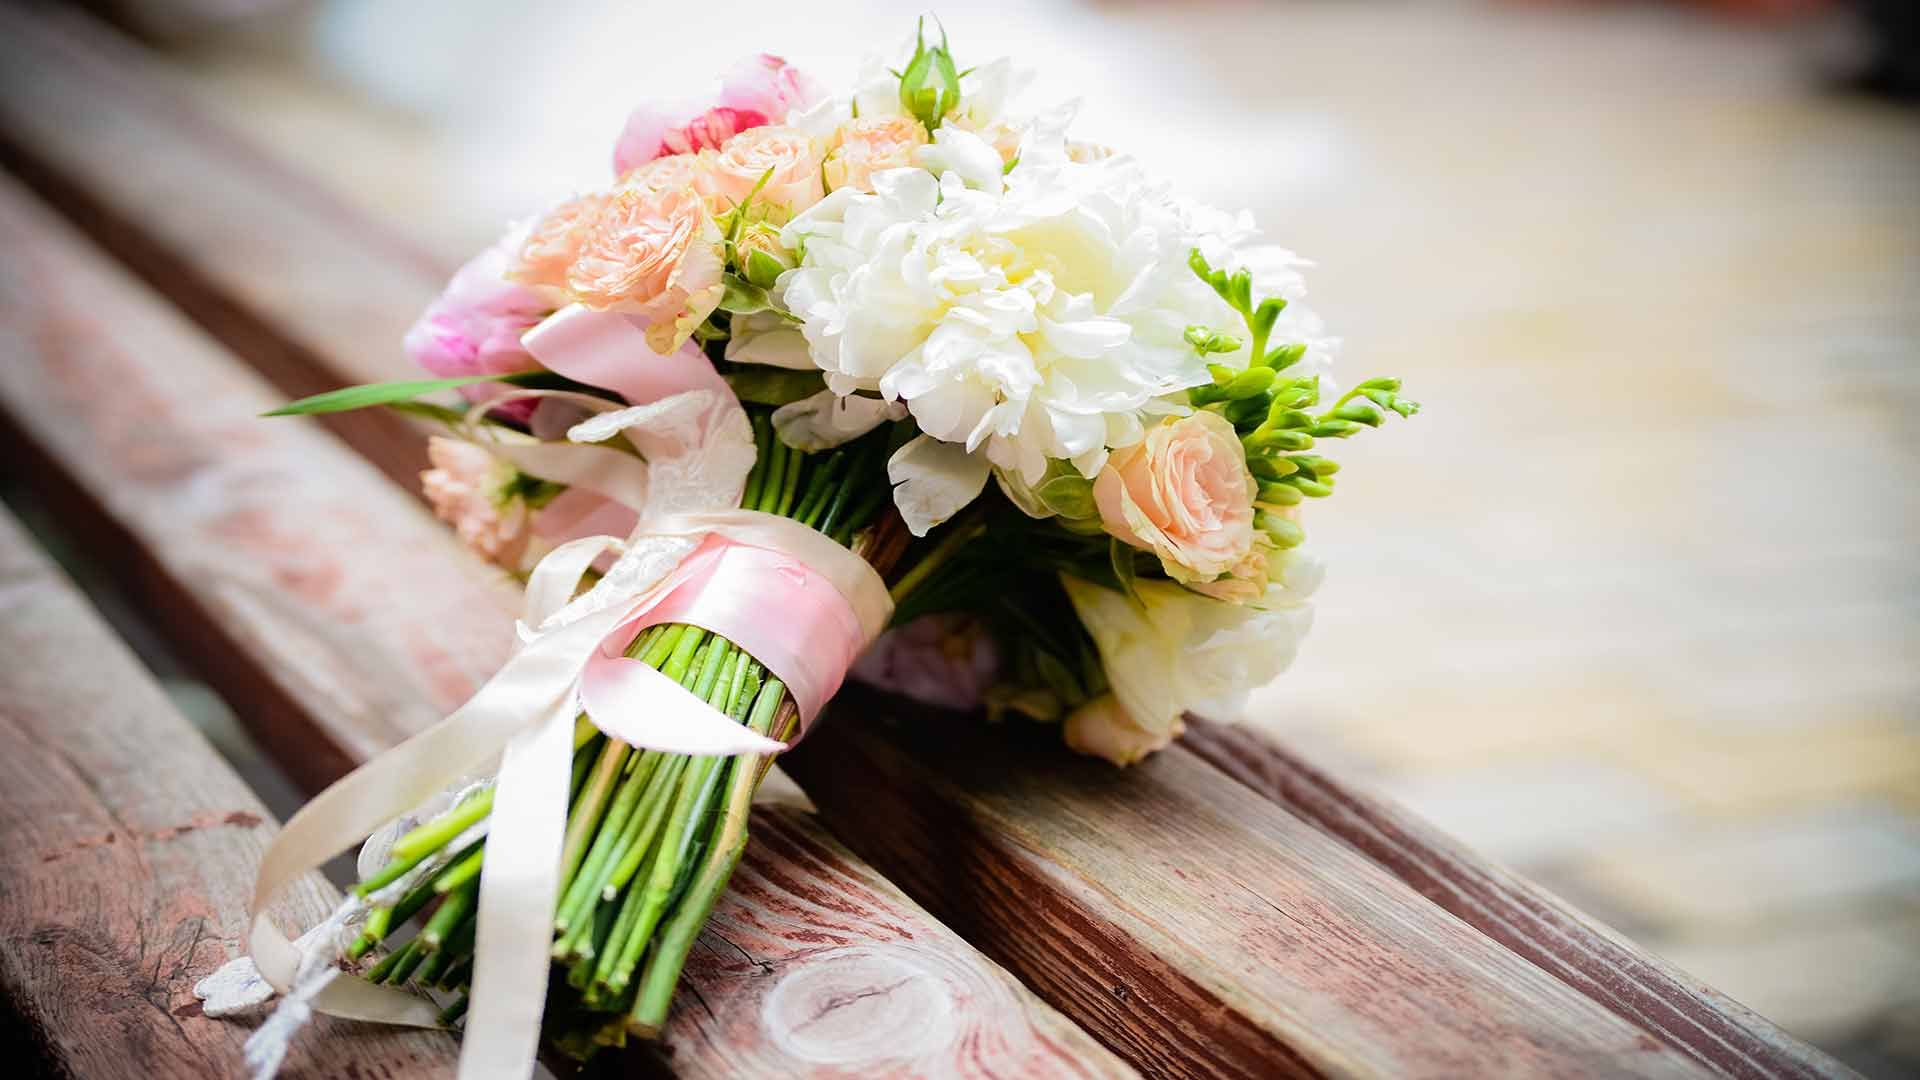 We Are A Famous And Reliable Flower Bouquet Supplier In Singapore